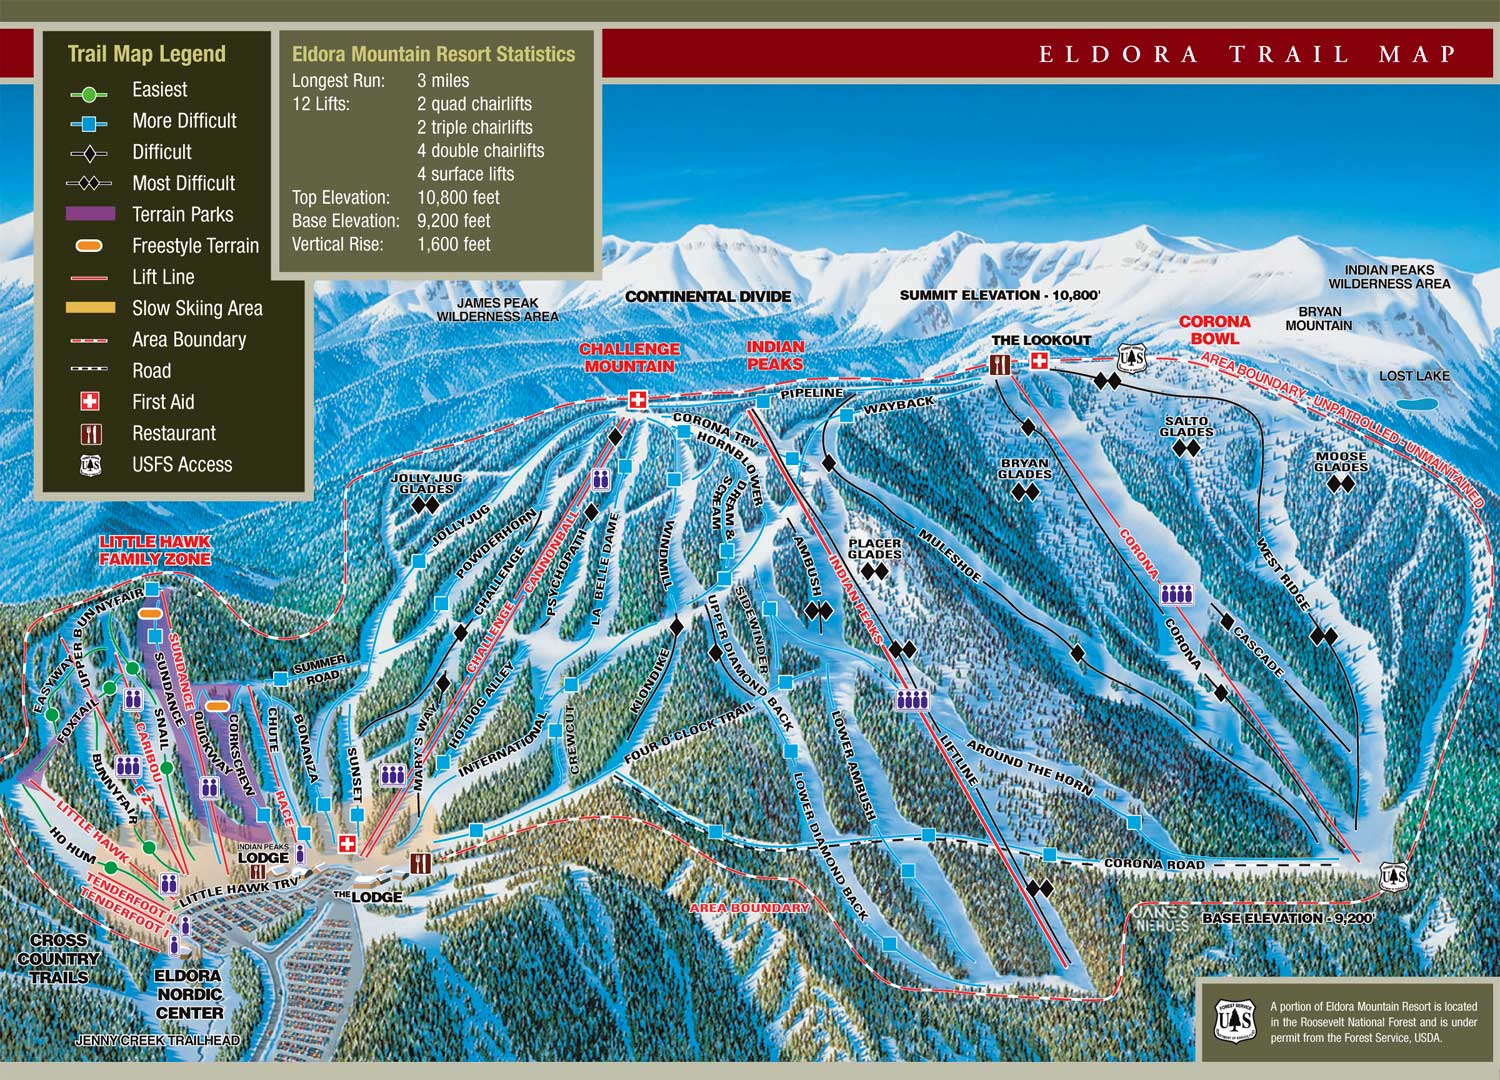 Eldora Mountain Resort - SkiMap.org on map of all colorado golf courses, map of all colorado counties, map of buttermilk ski area, map of all colorado cities and towns, map of beaver creek ski resort trail,